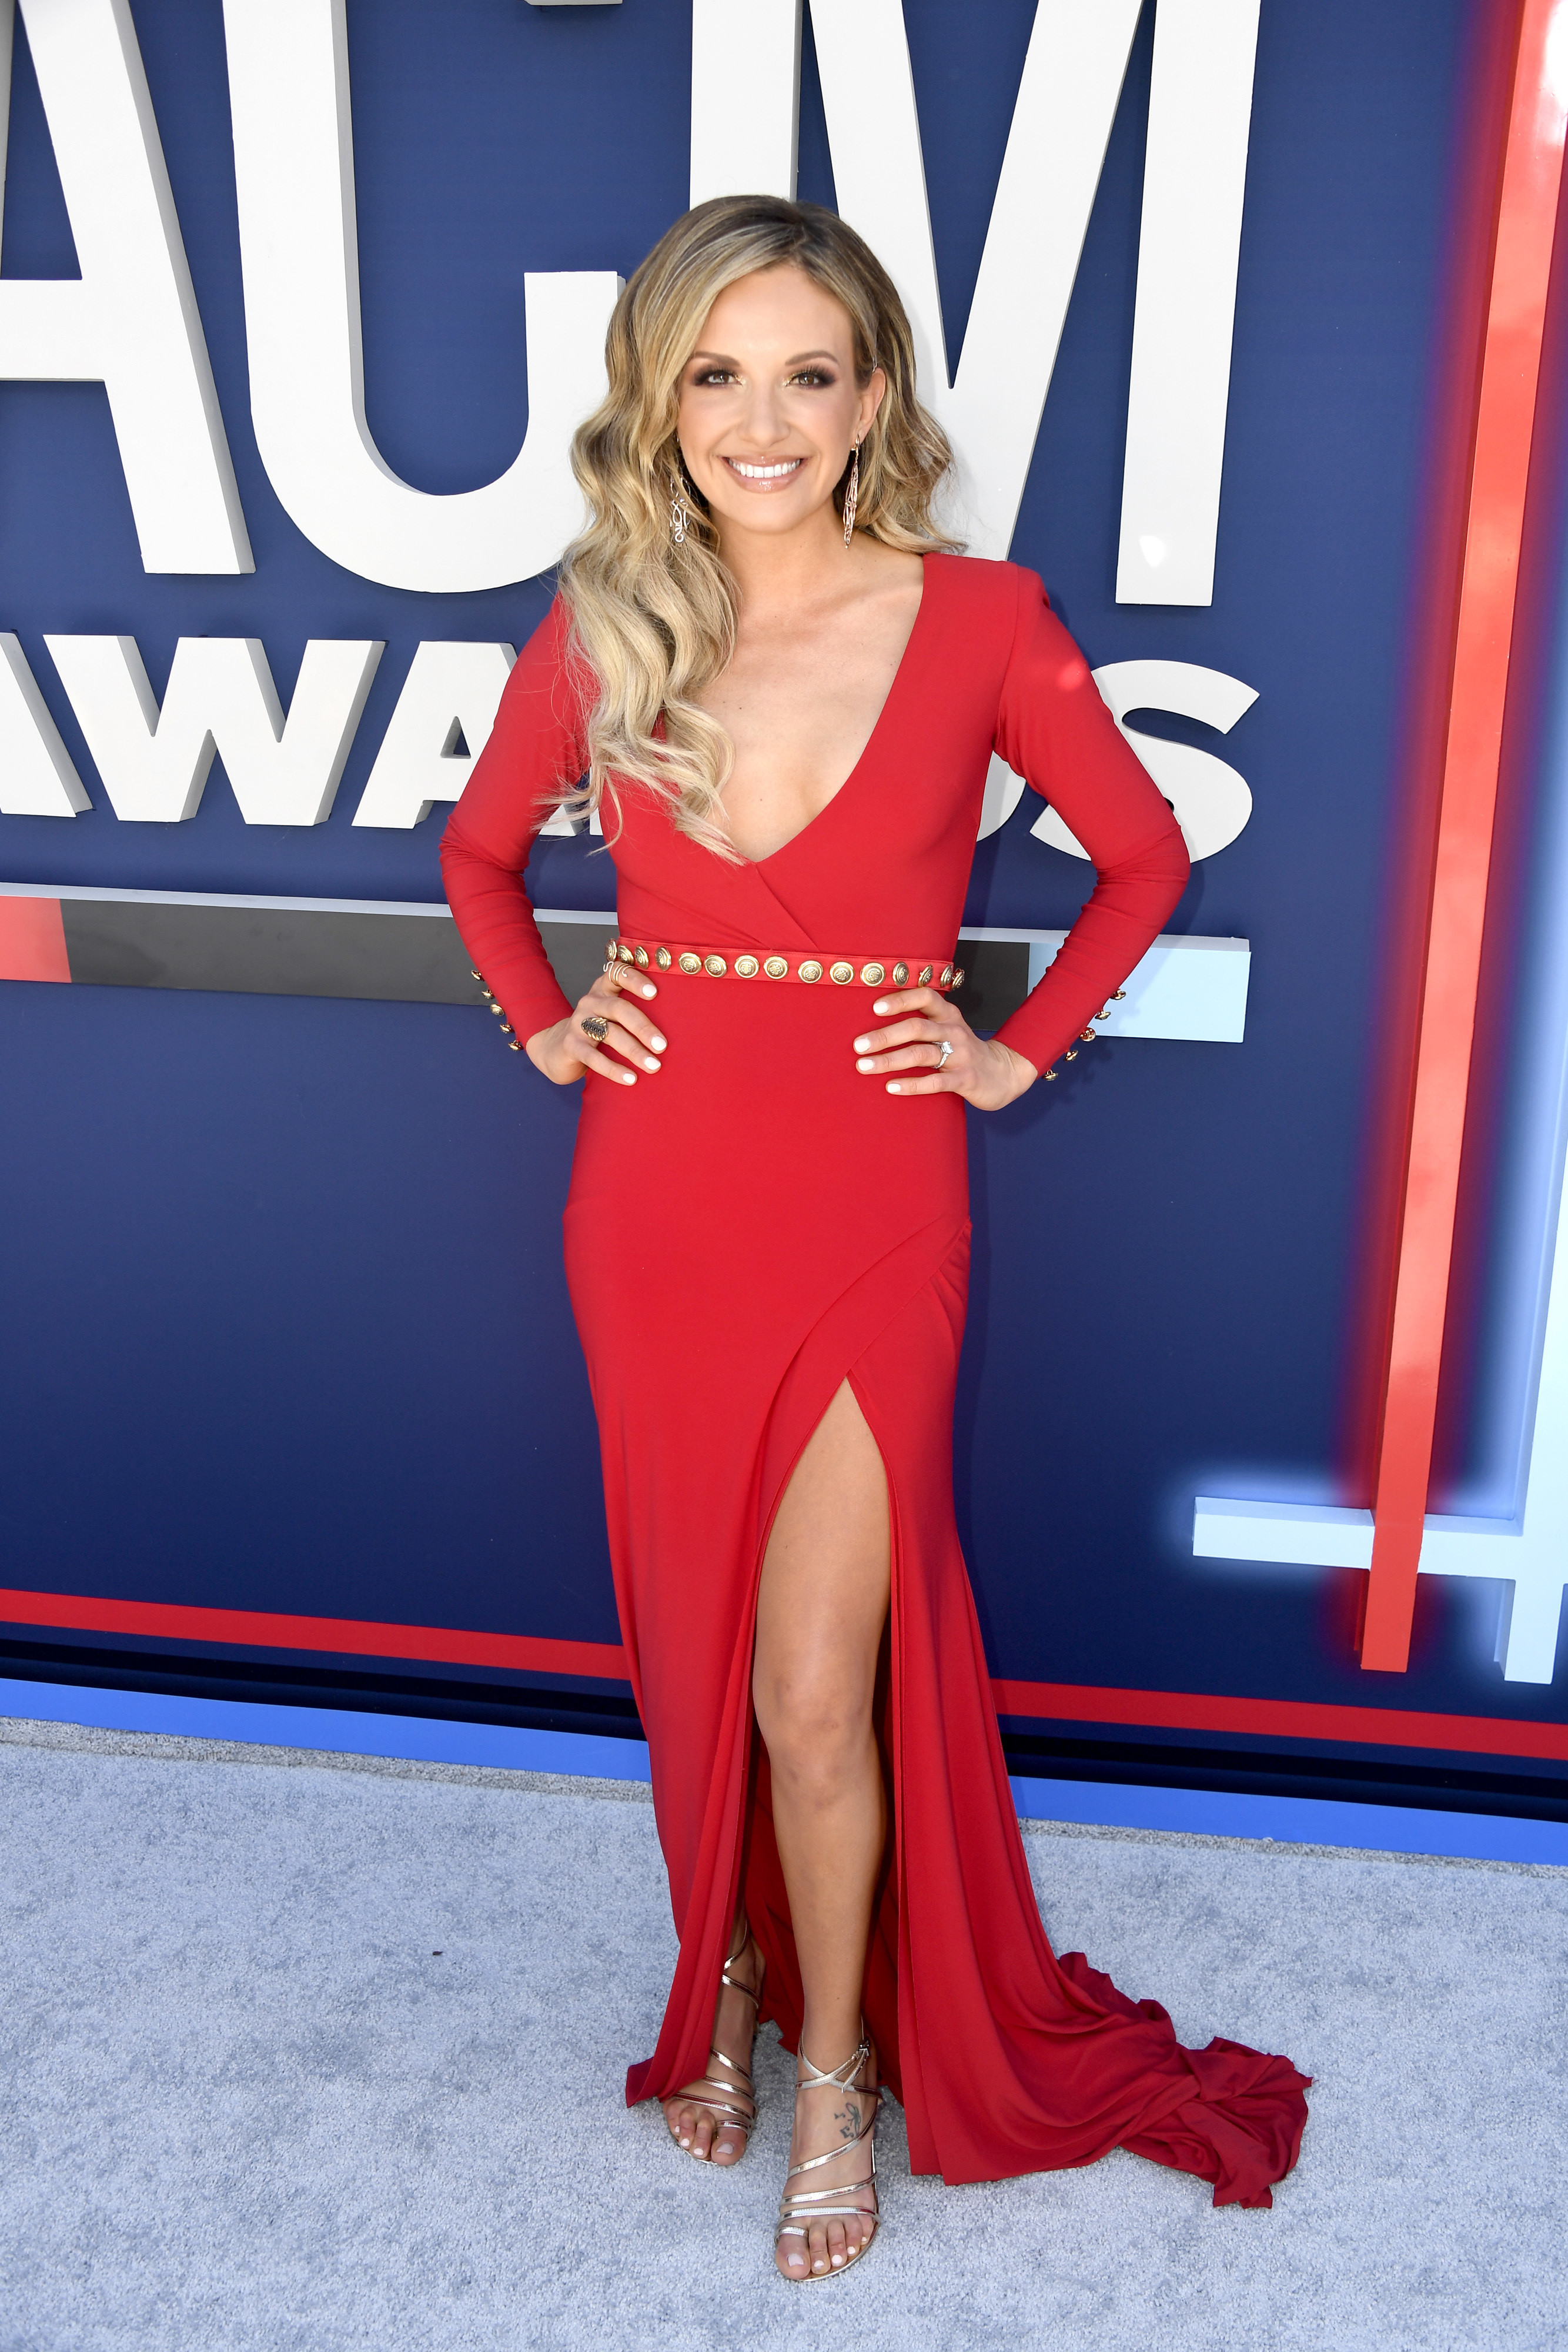 Carly Pearce - Every Must-See Look From The 2019 ACM